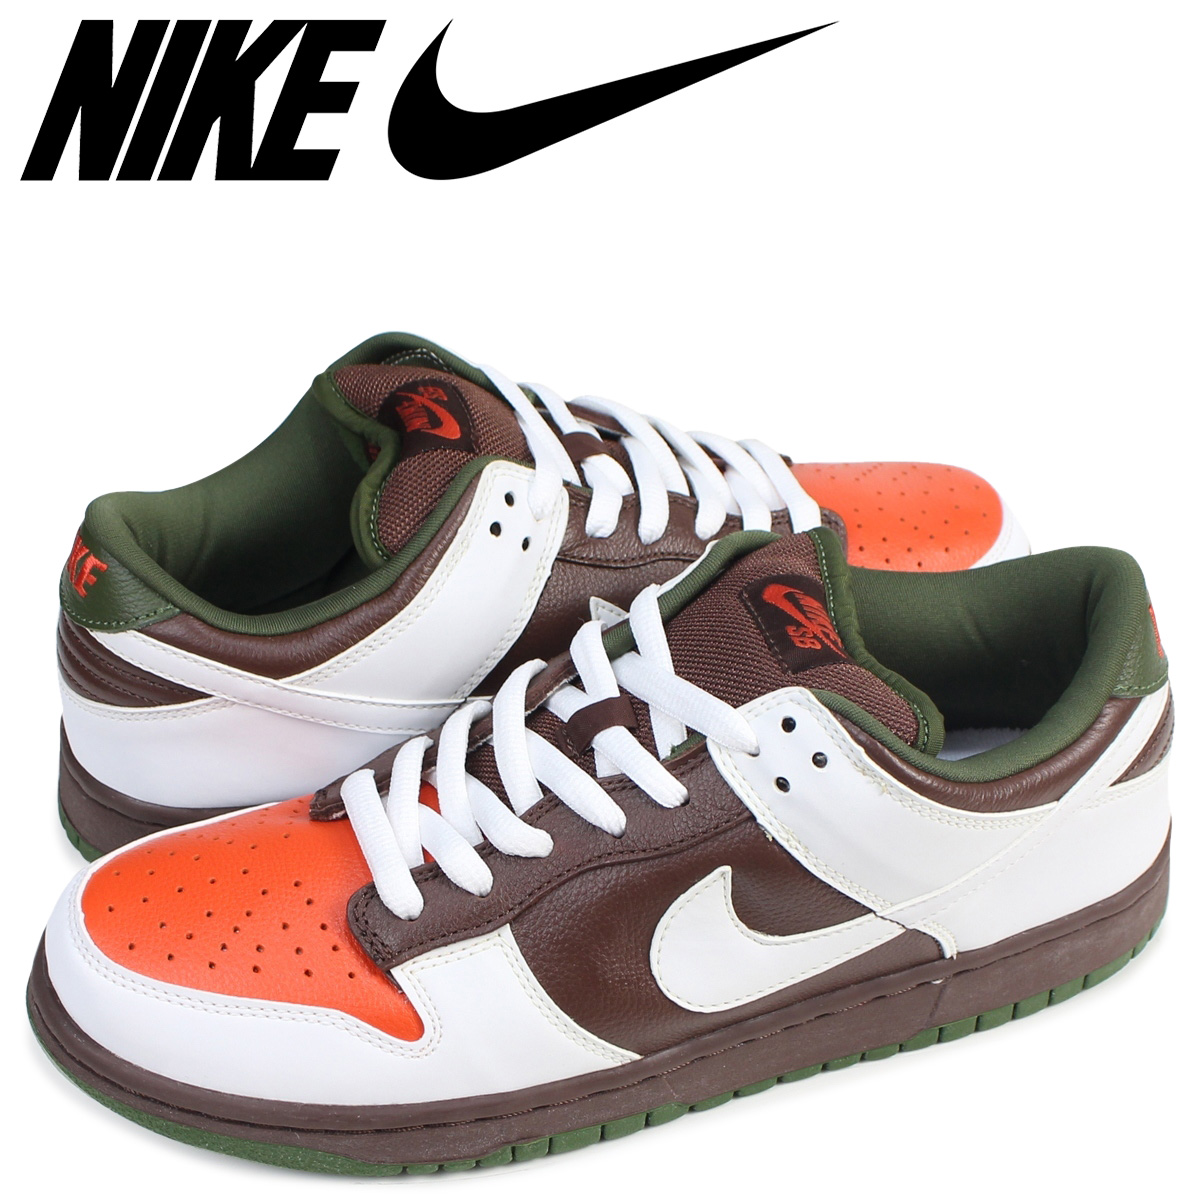 3d24f3ee28059 Nike NIKE SB dunk low sneakers DUNK LOW PRO OOMPA LOOMPA 304,292-228 men's  shoes ...